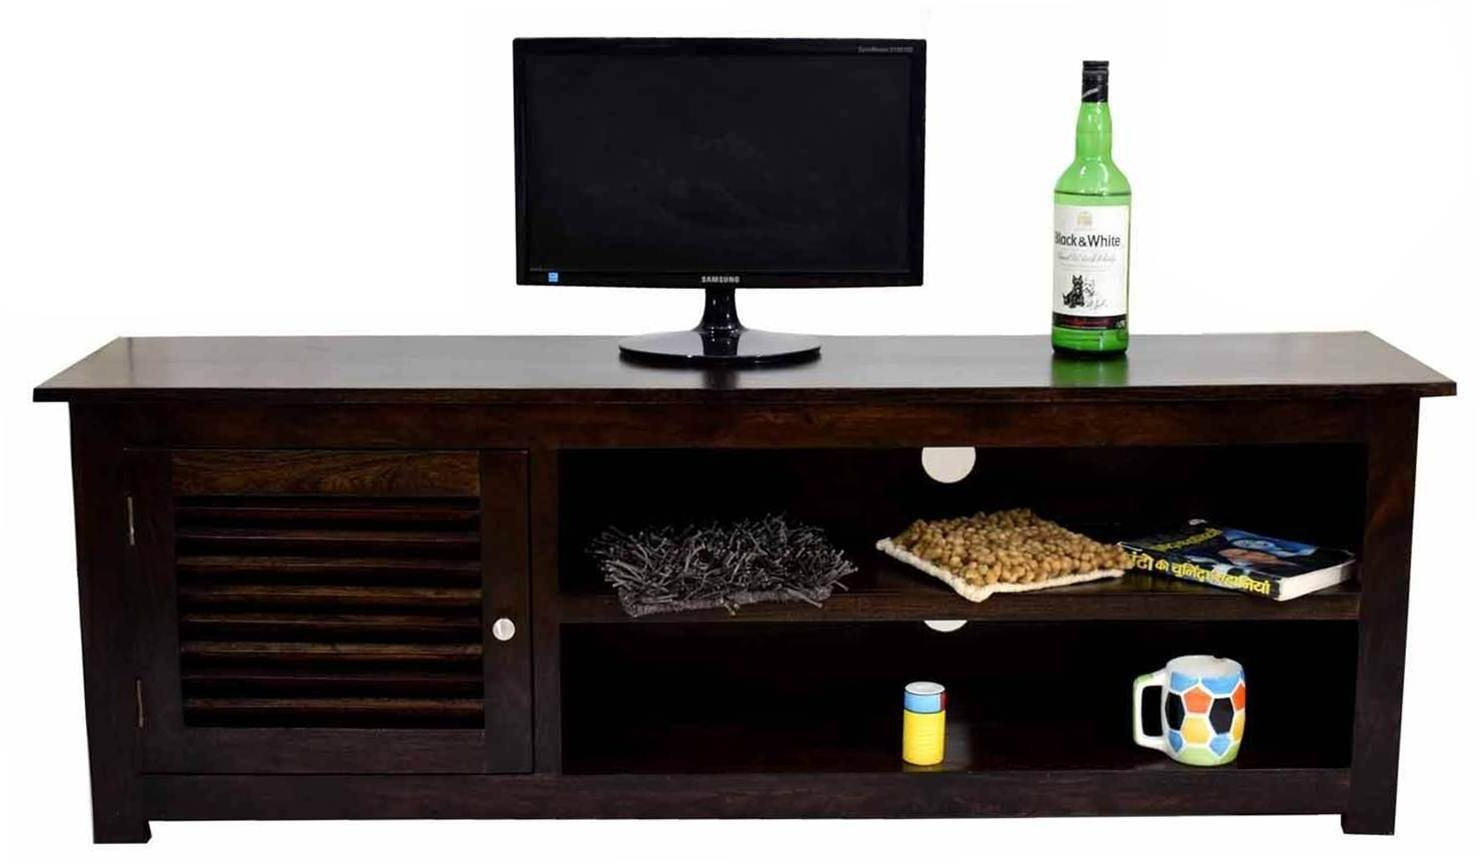 Daintree Dyna Solid Wood Tv Entertainment Unit (dark Walnut Finish Intended For Favorite Daintree Tv Stands (View 7 of 20)